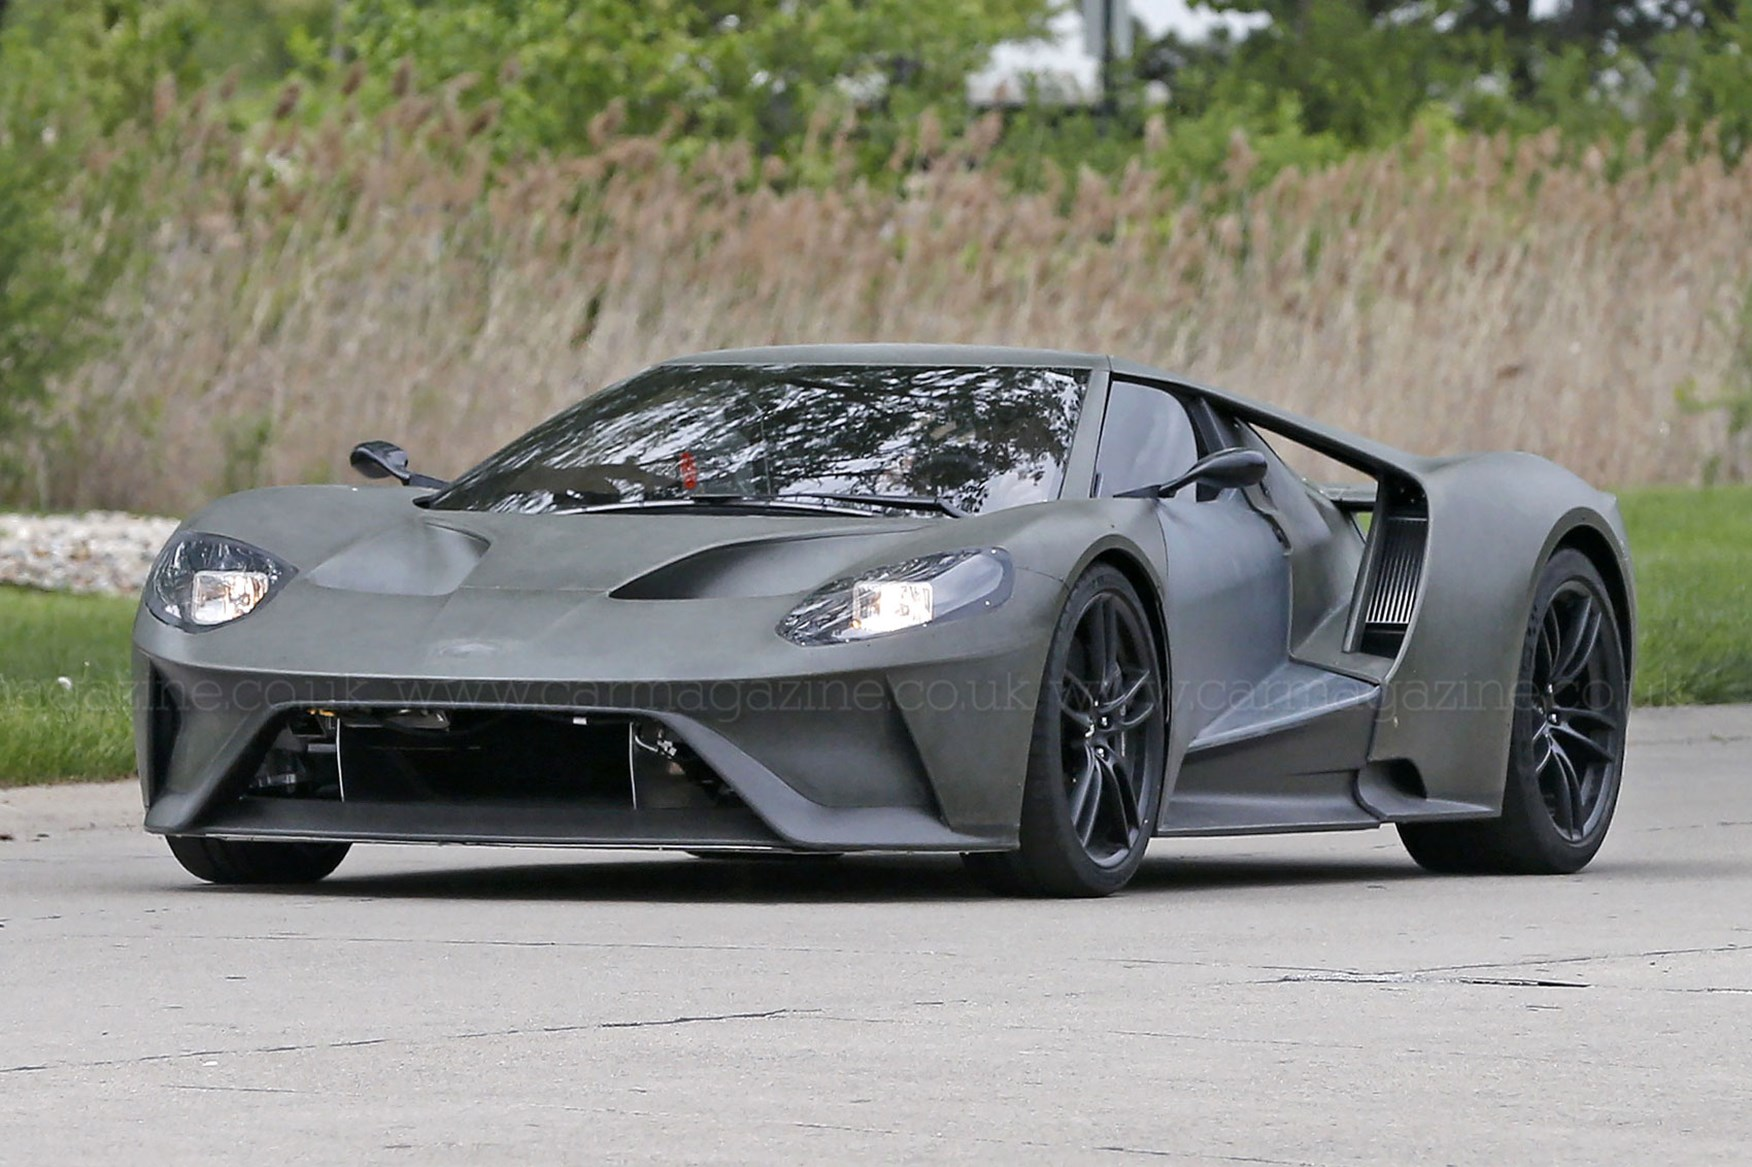 Ford Gt Prototype Spied Testing